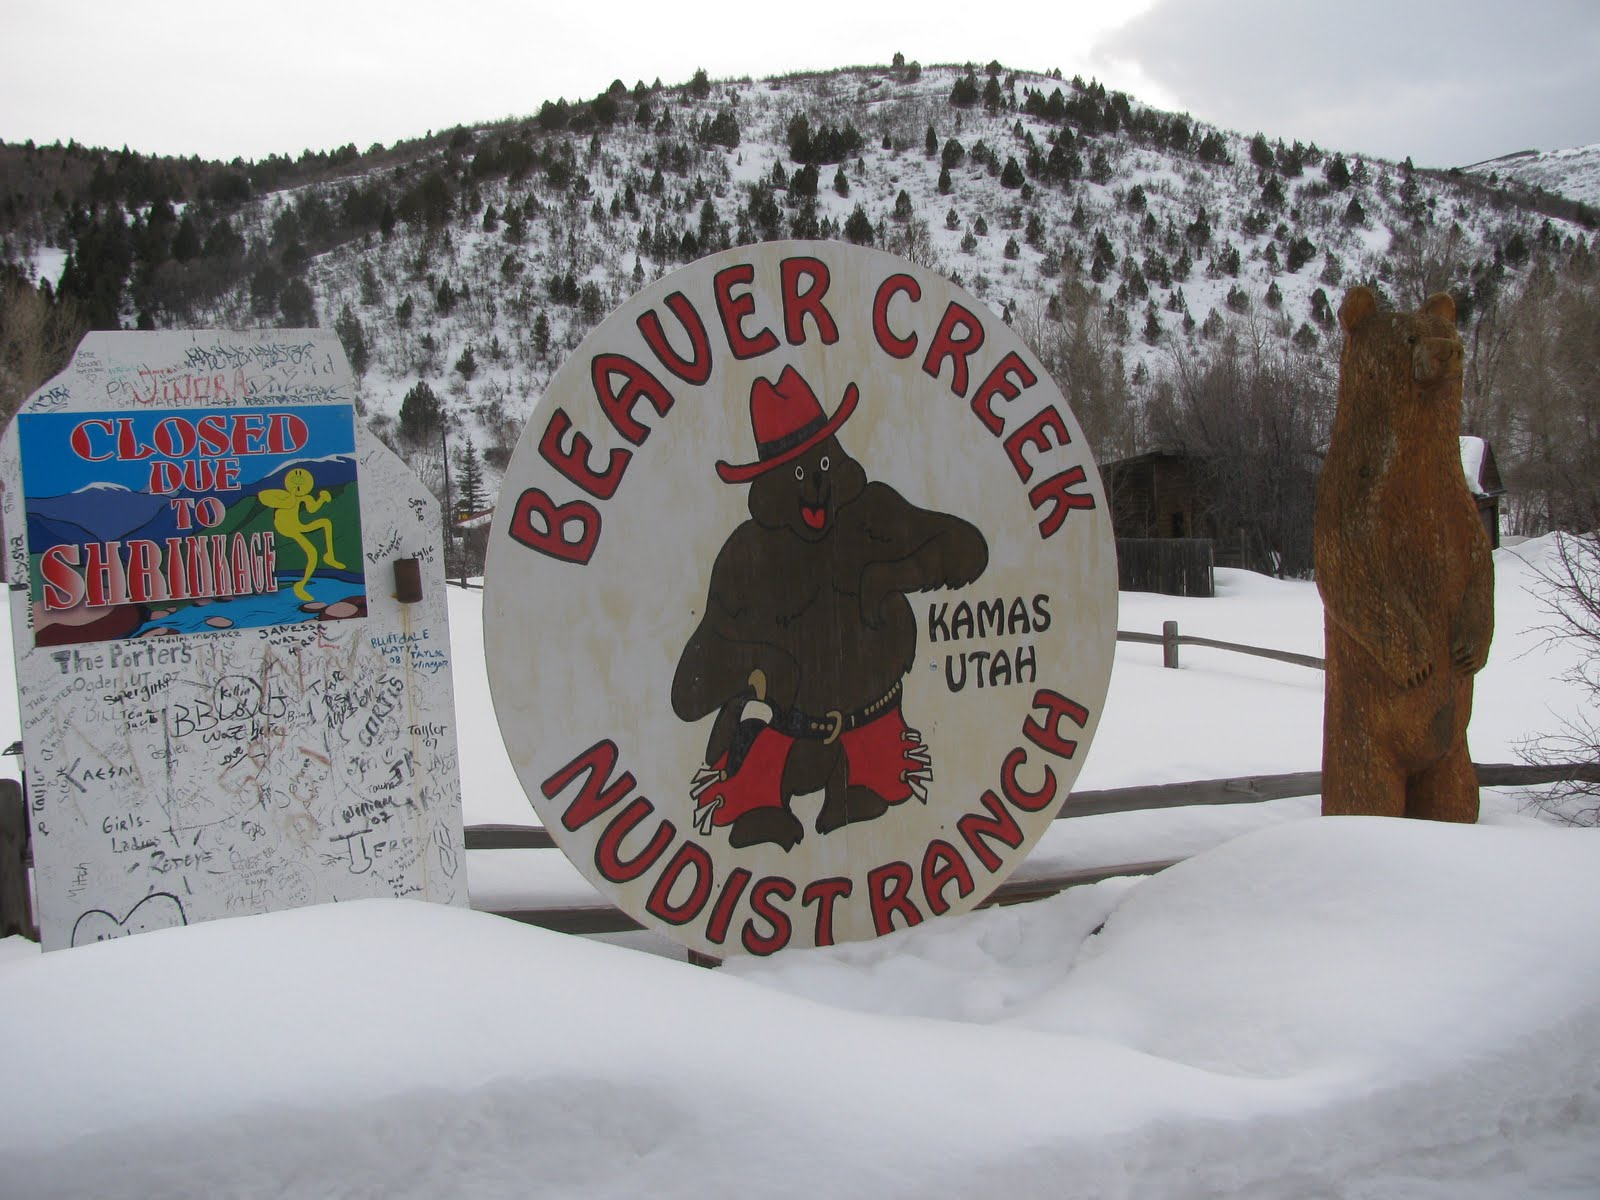 Cannot Beaver creek nudist ranch sorry, that